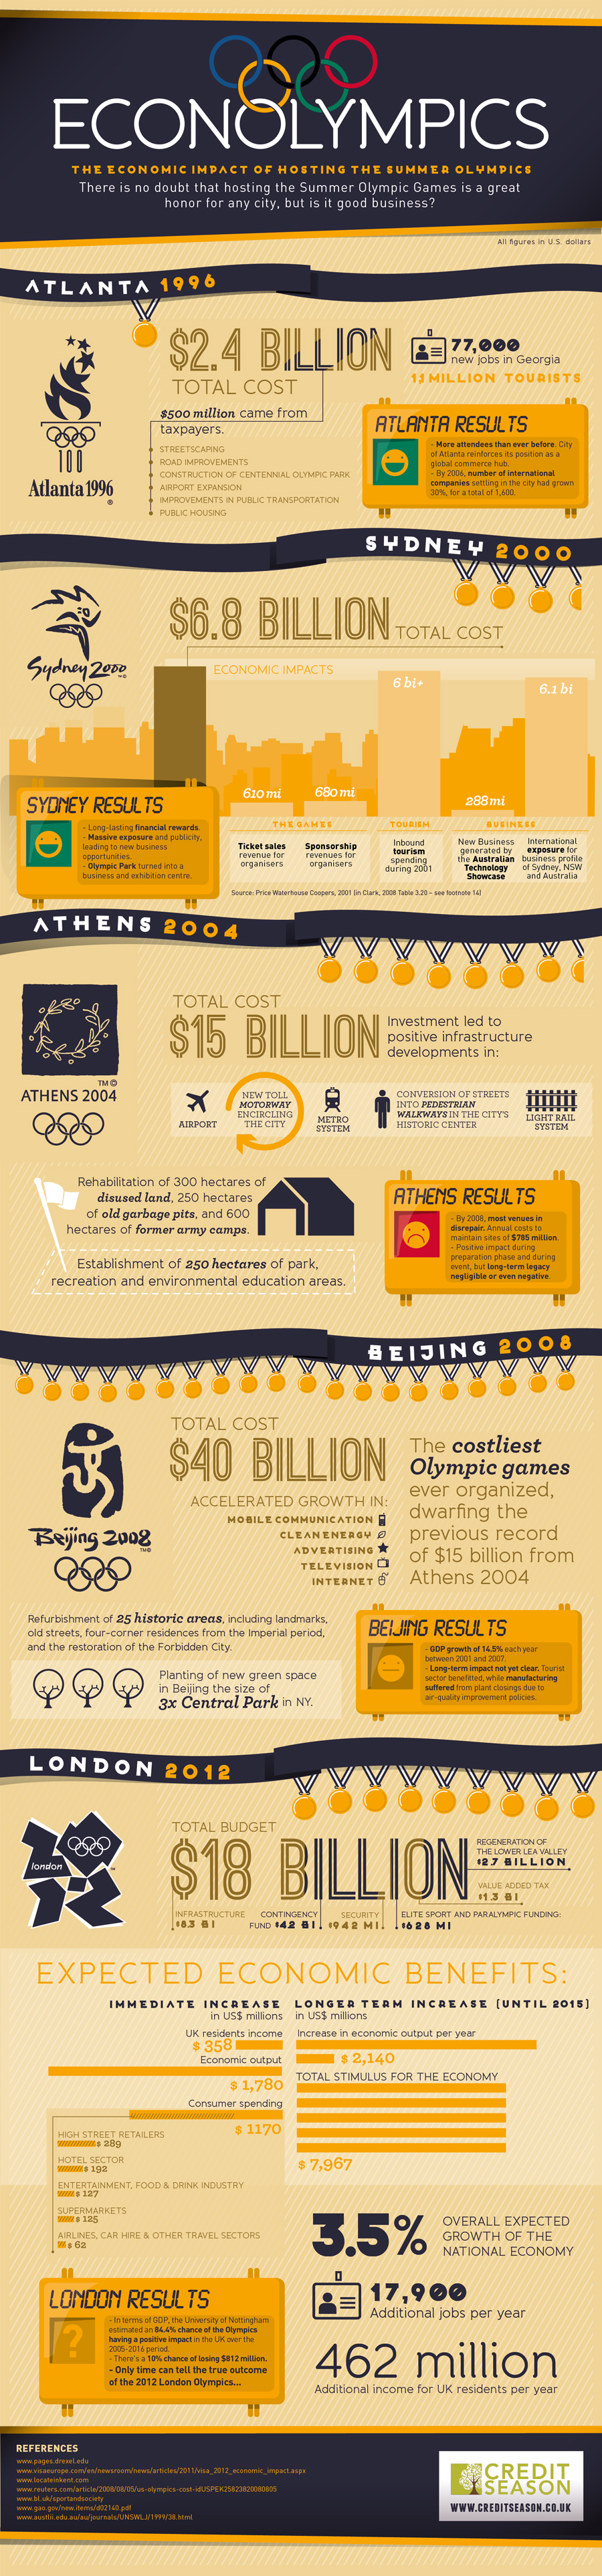 INFOGRAPHIC: The economic impact of holding the Summer Olympics, from Atlanta 1996 to London 2012.